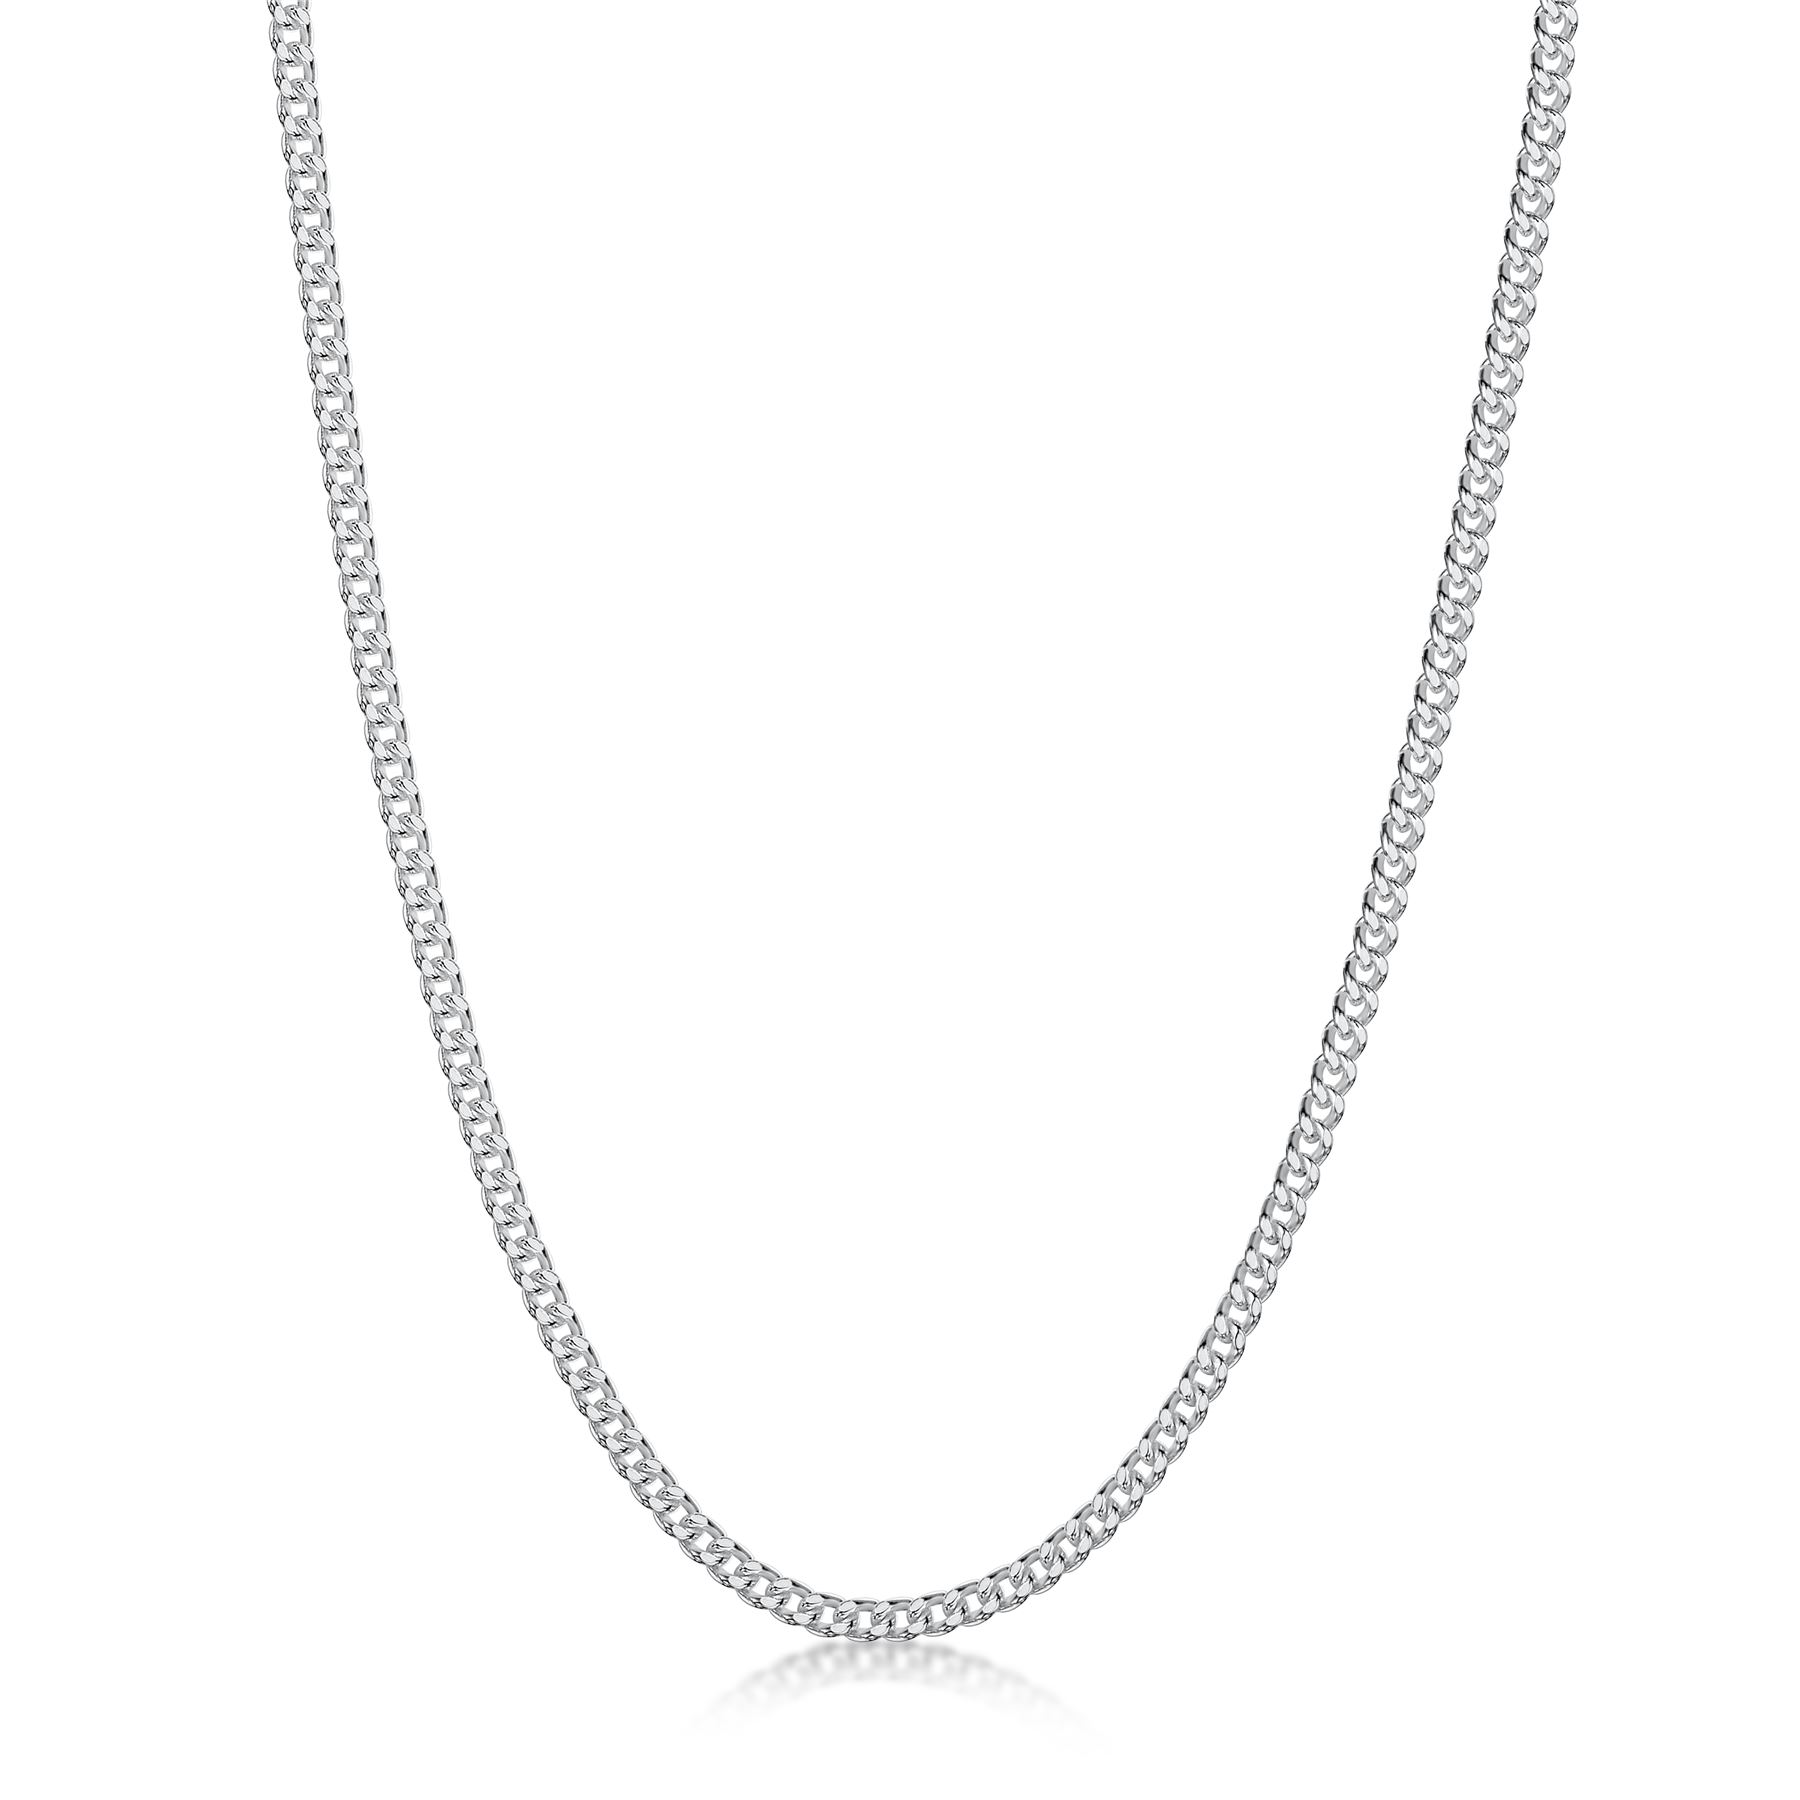 Amberta-Genuine-Real-925-Sterling-Silver-Long-Curb-Necklace-Chain-Made-in-Italy thumbnail 12